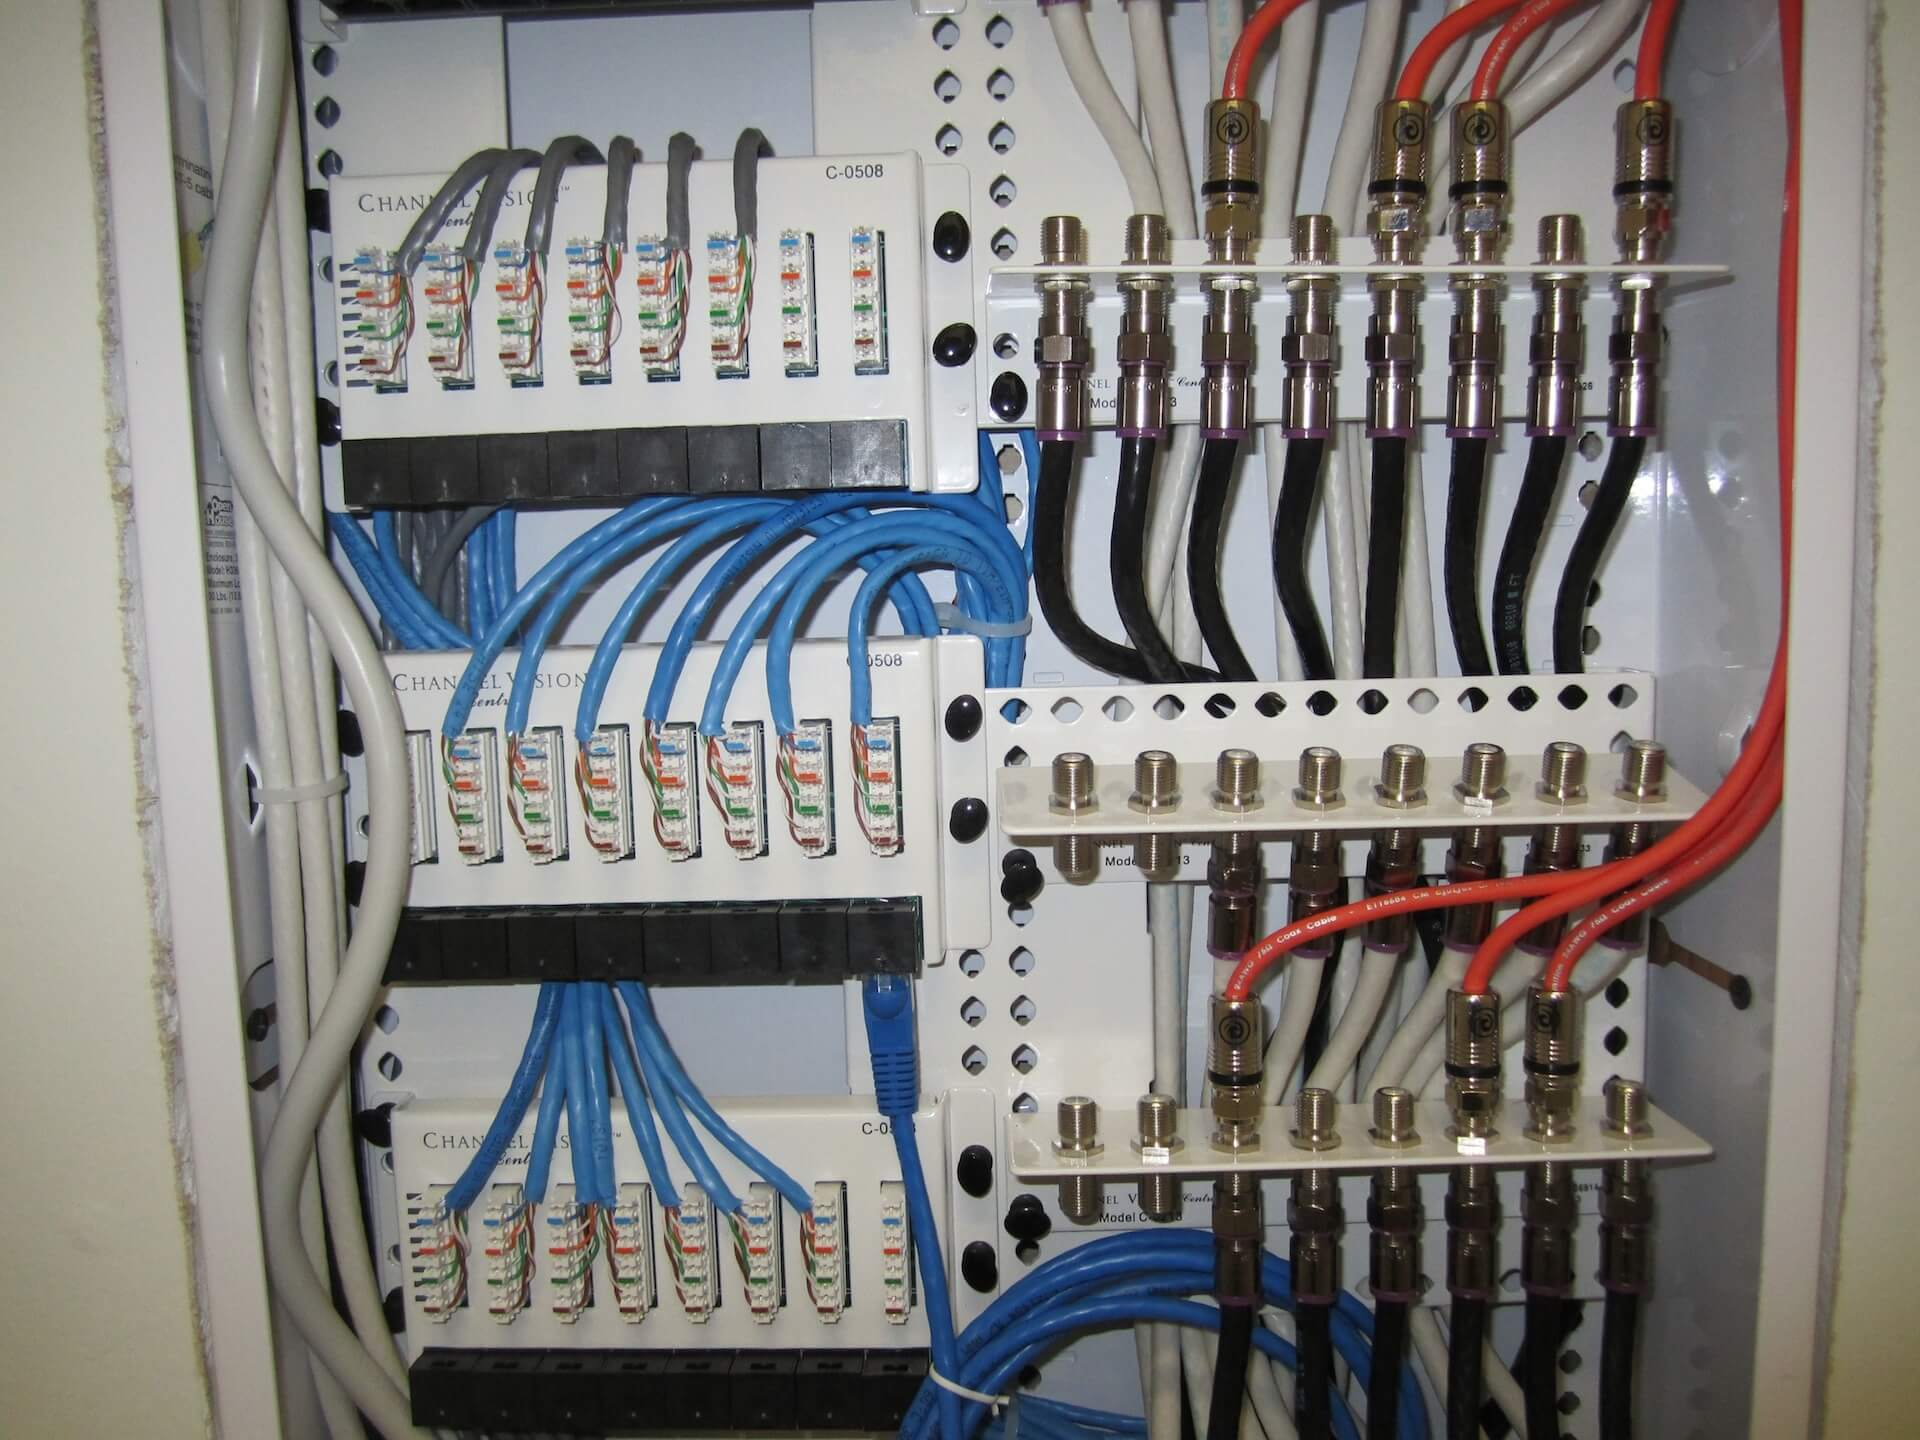 low voltage wiring audio video evolution rh audiovideoevolution net low voltage wiring diagram low voltage wiring code